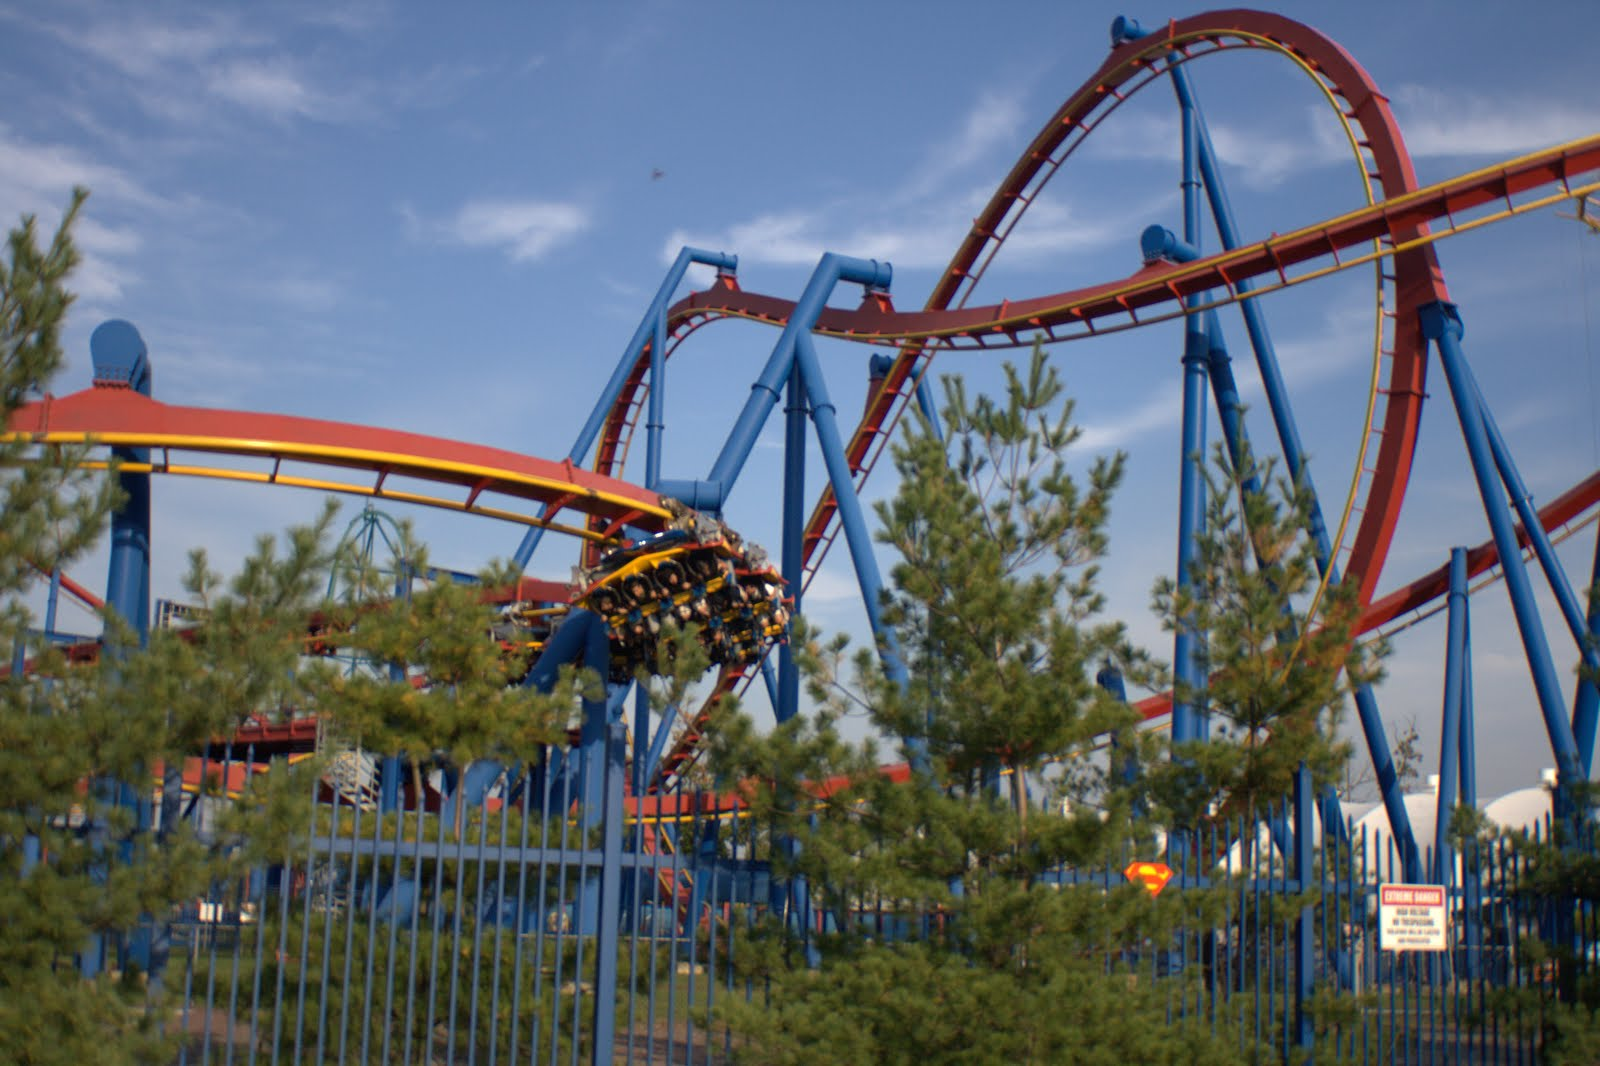 Re: six flags great adventure (sfgadv) discussion thread